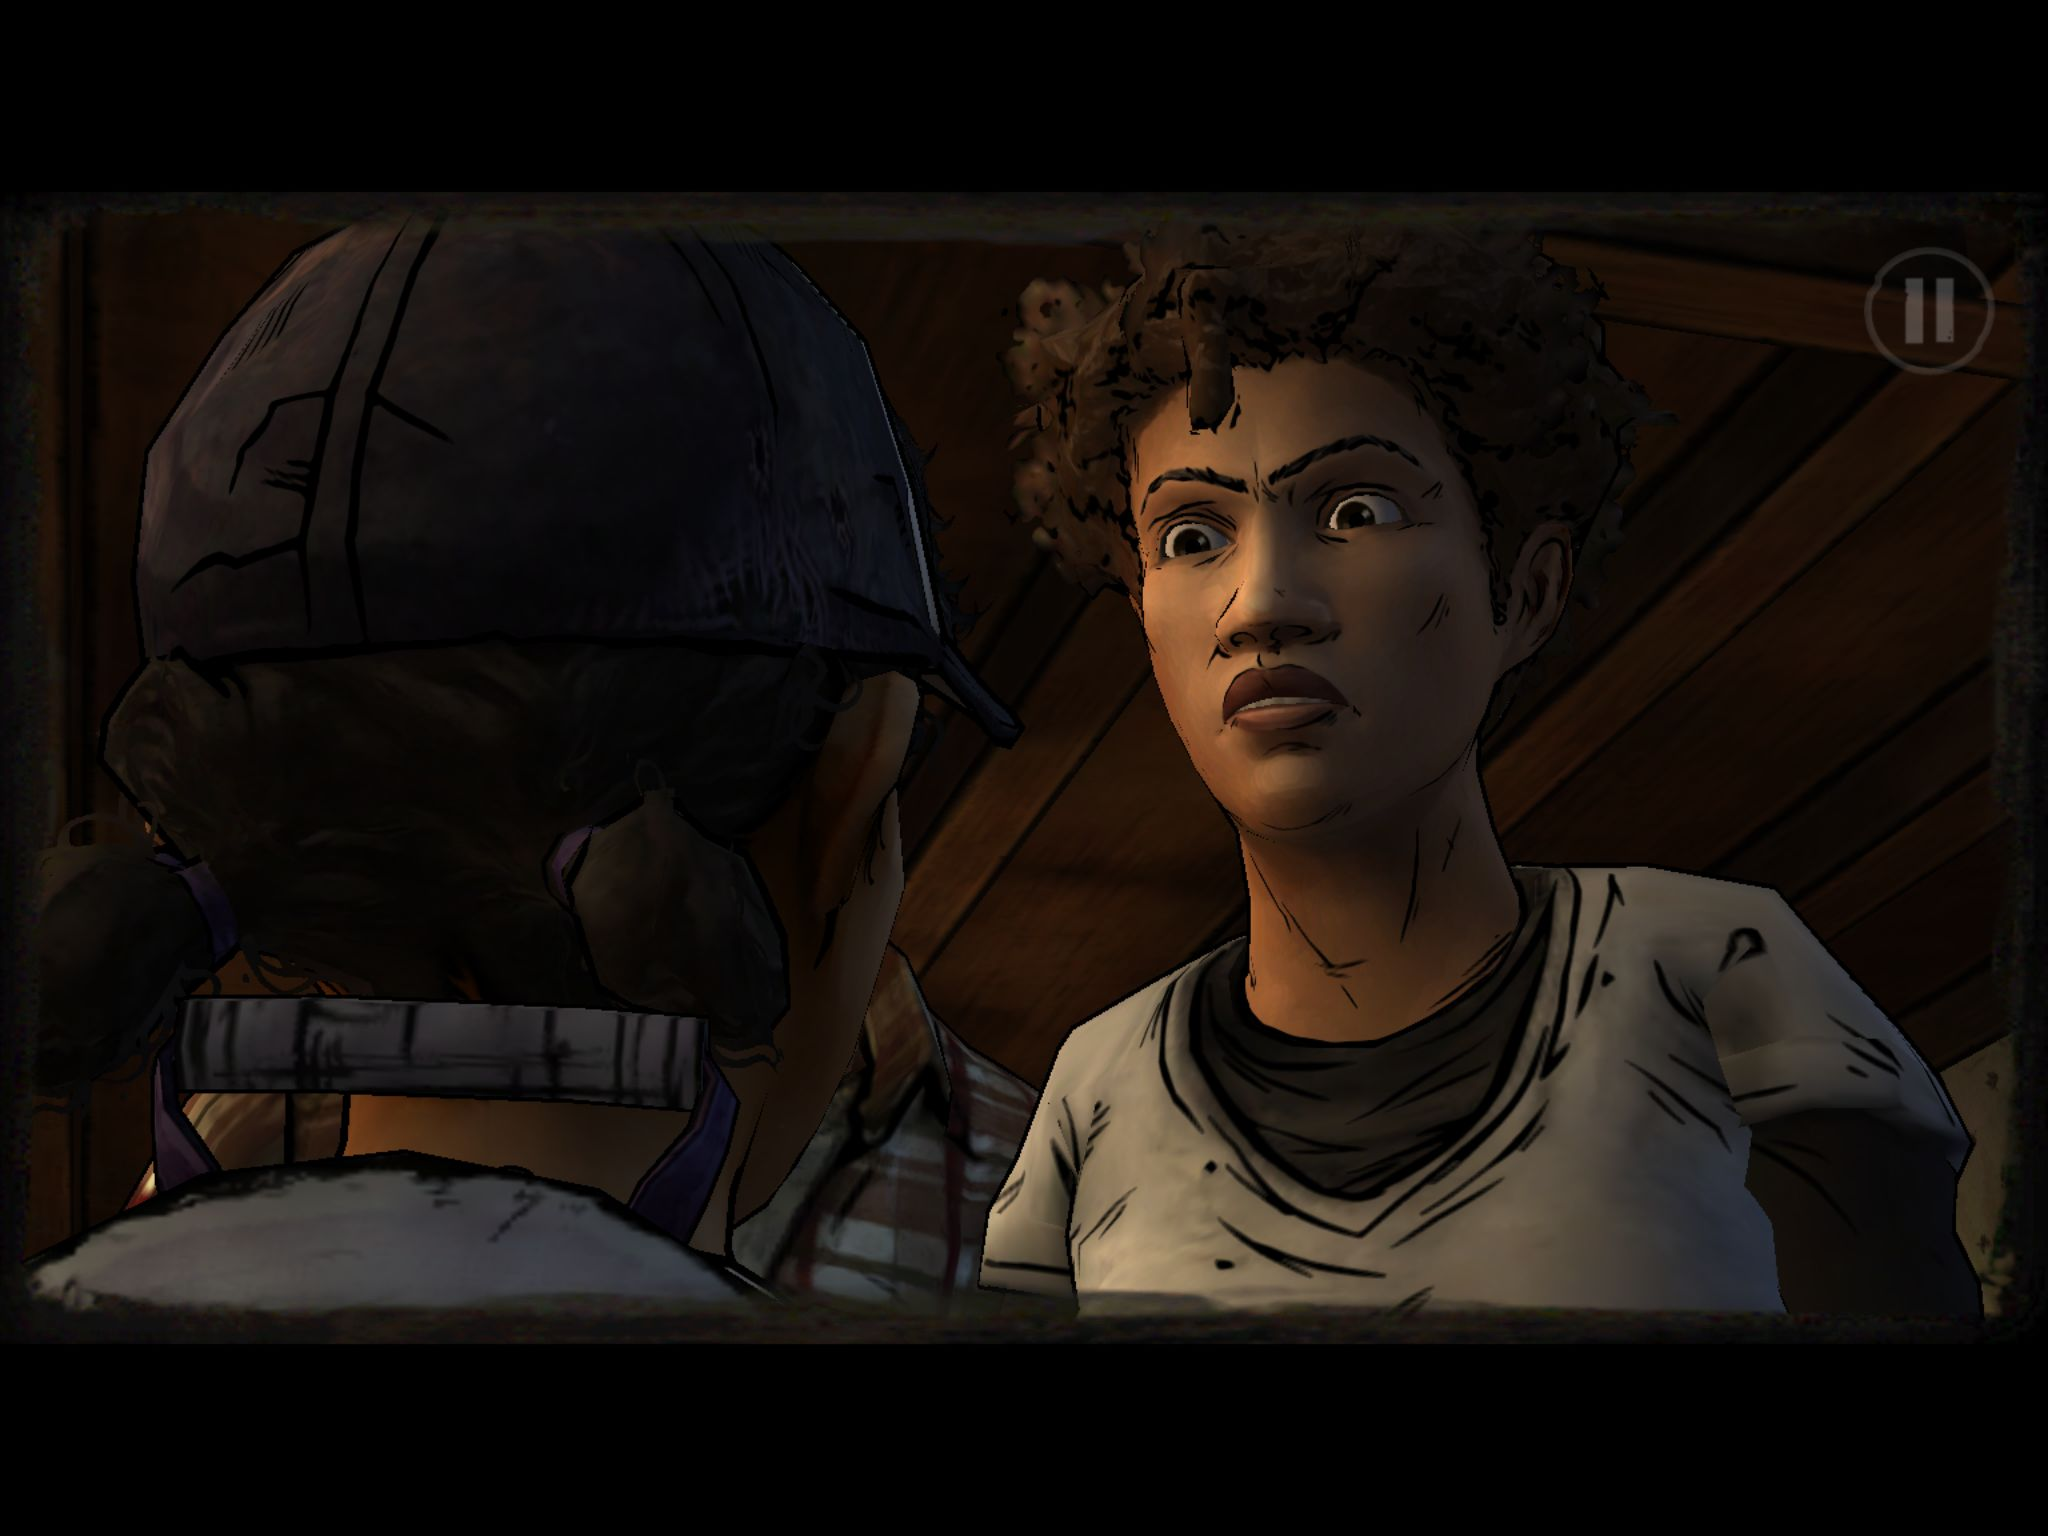 Episode 2 of Walking Dead: Season 2 has just zombie-shuffled onto iOS